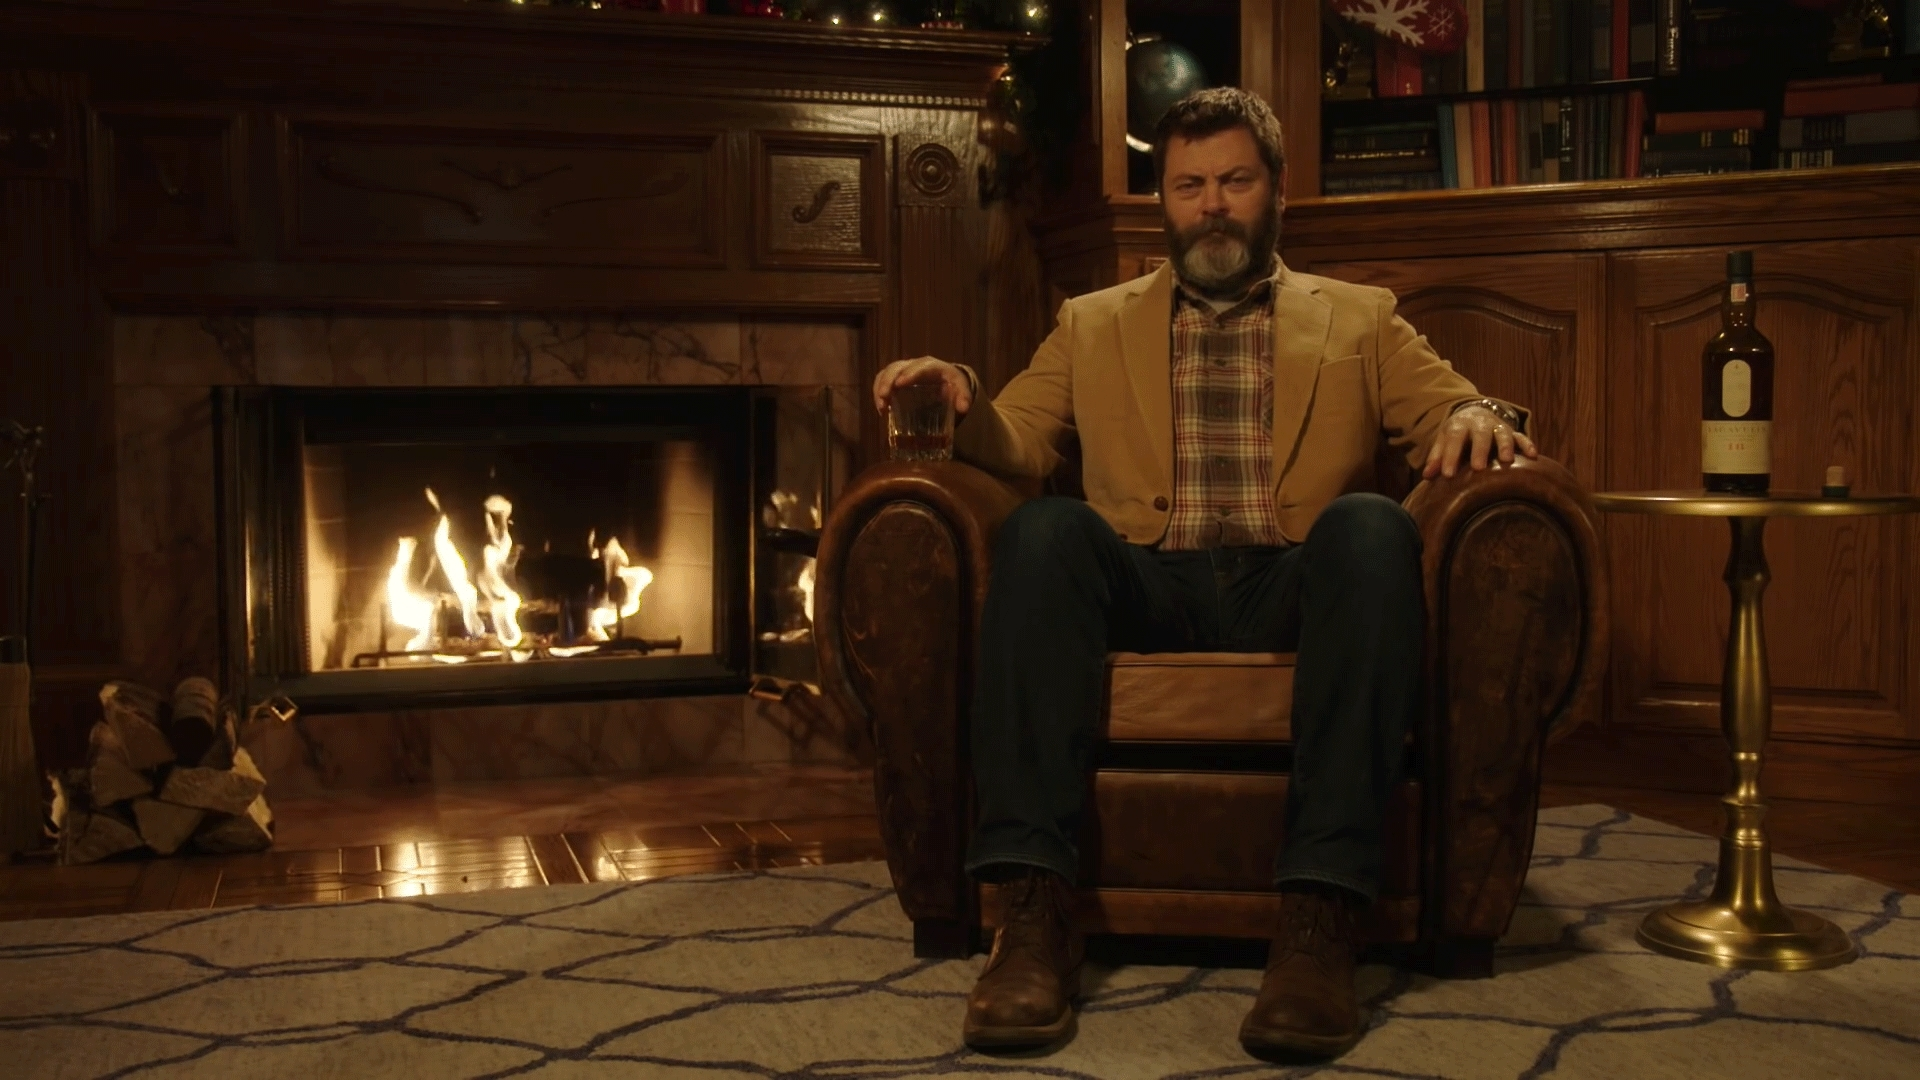 PandR, pandr, Nick Offerman Drinking Whiskey GIFs